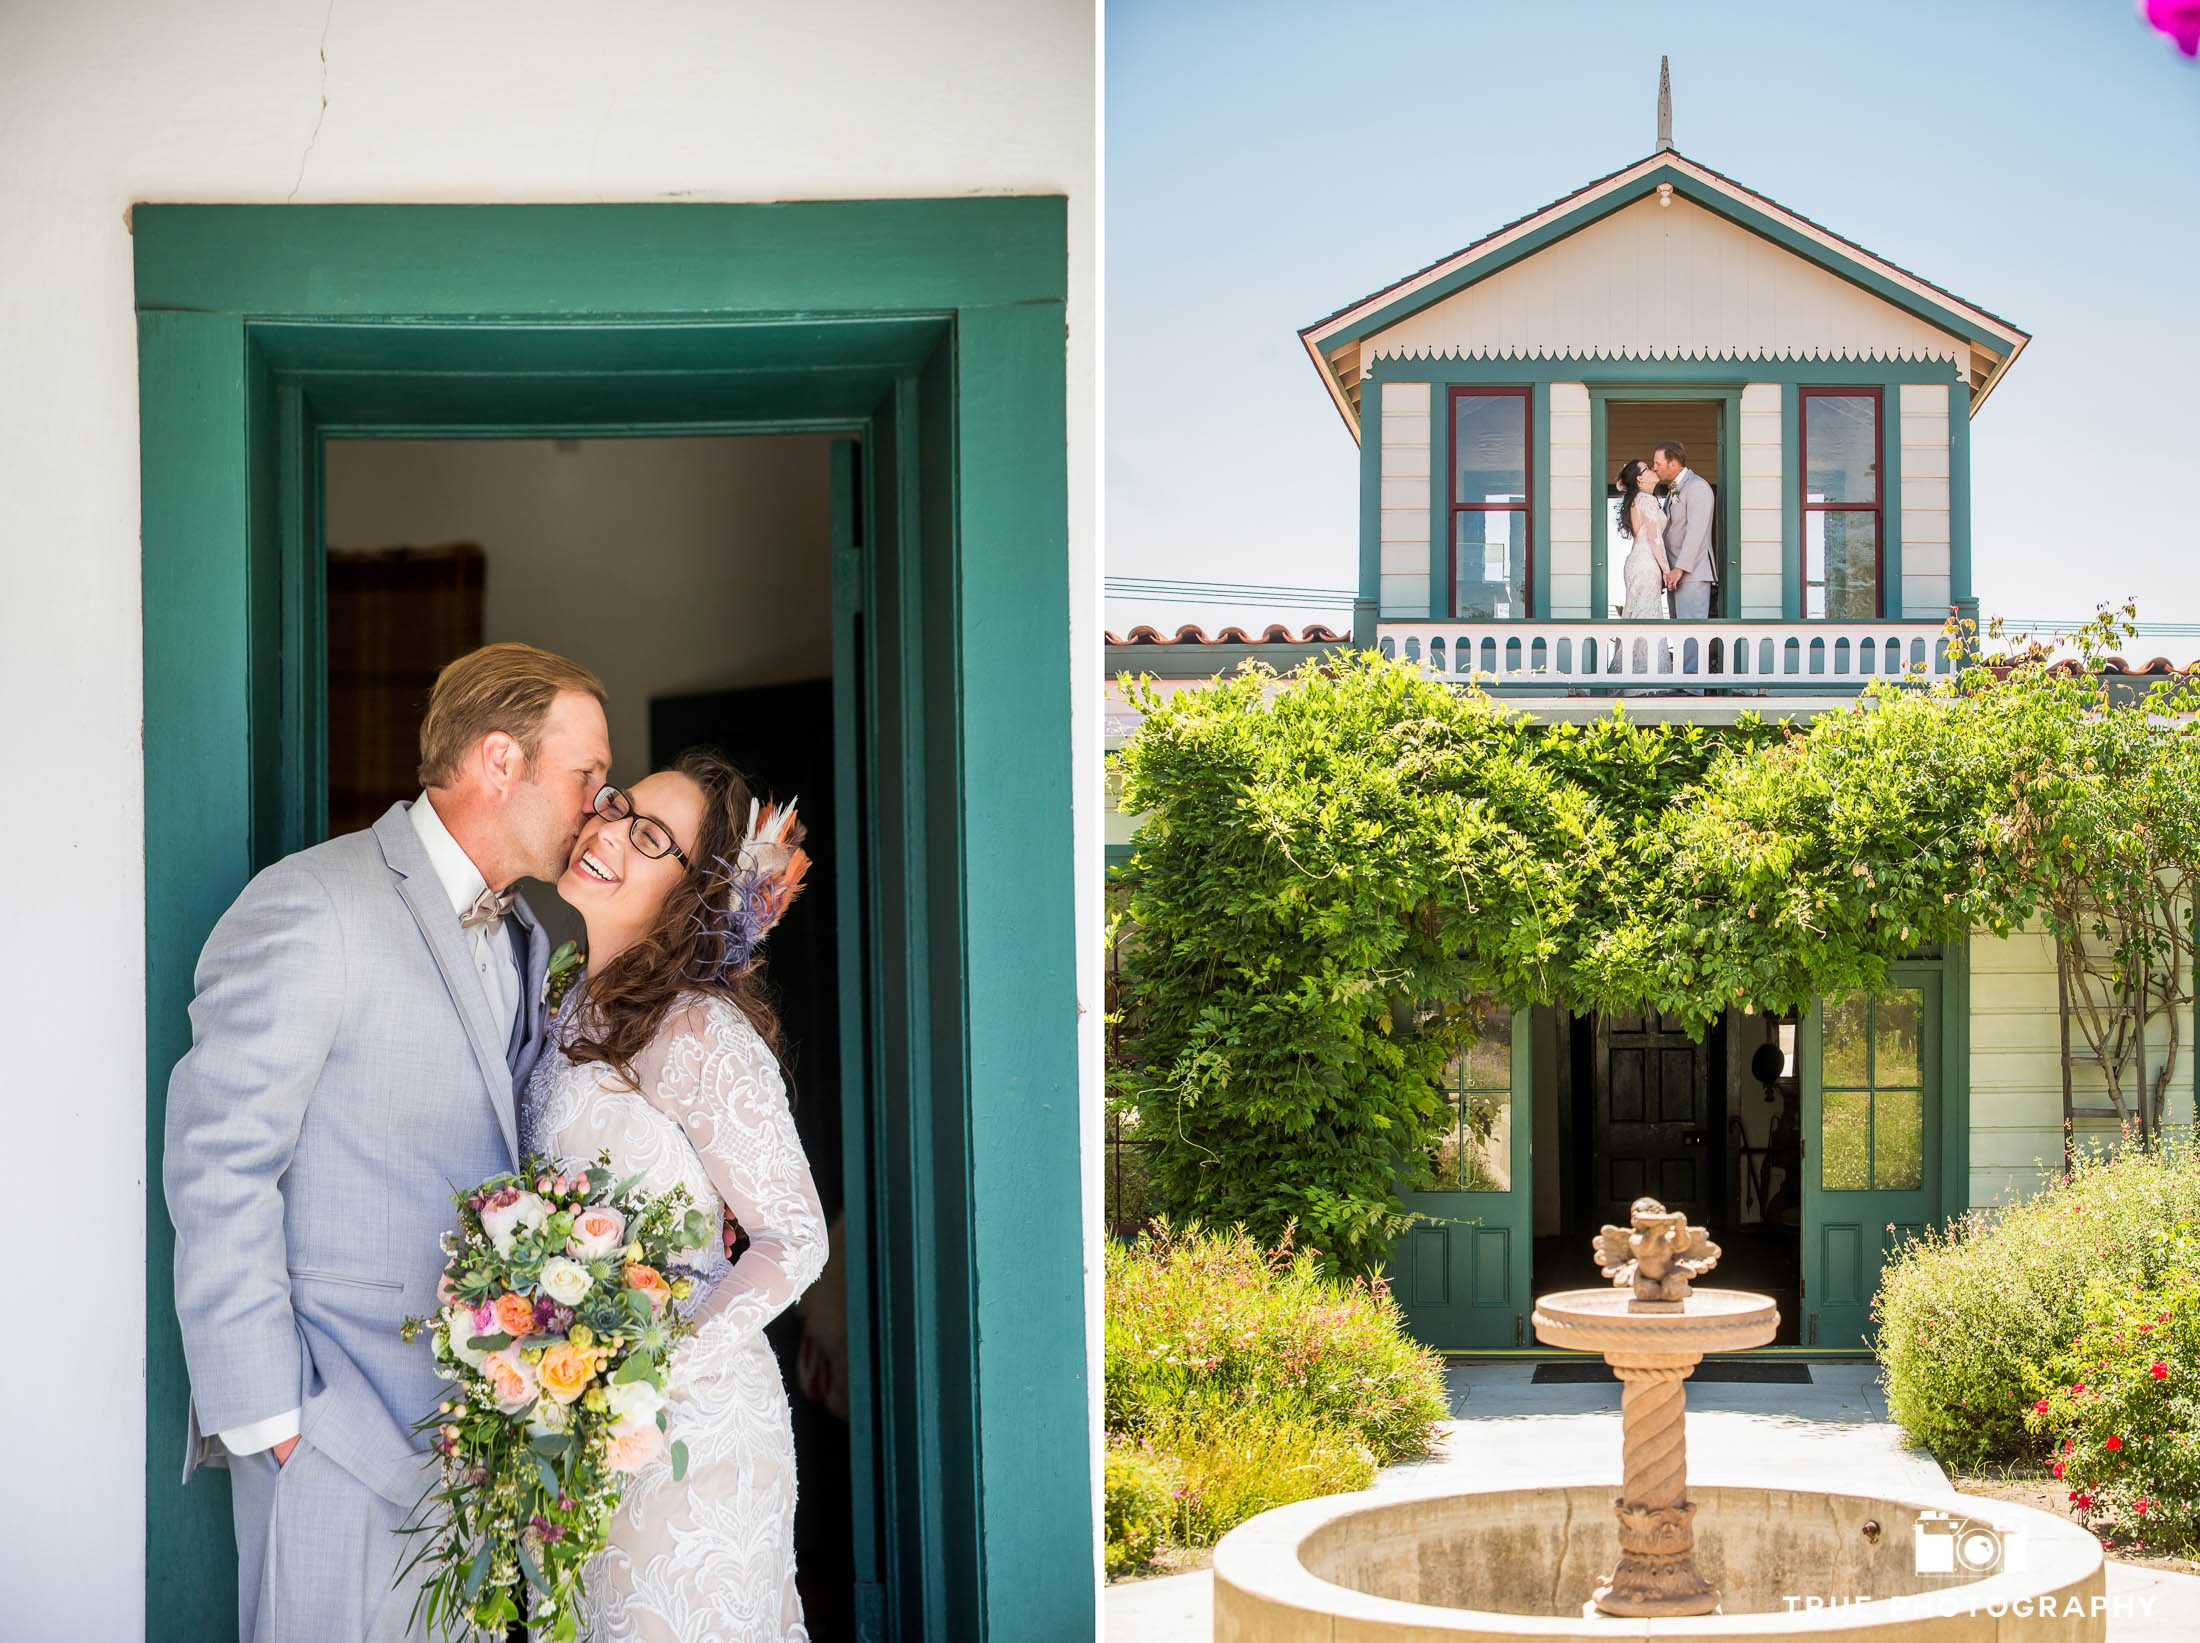 Bride and Groom wedding portraits in garden courtyard of historical spanish-style house